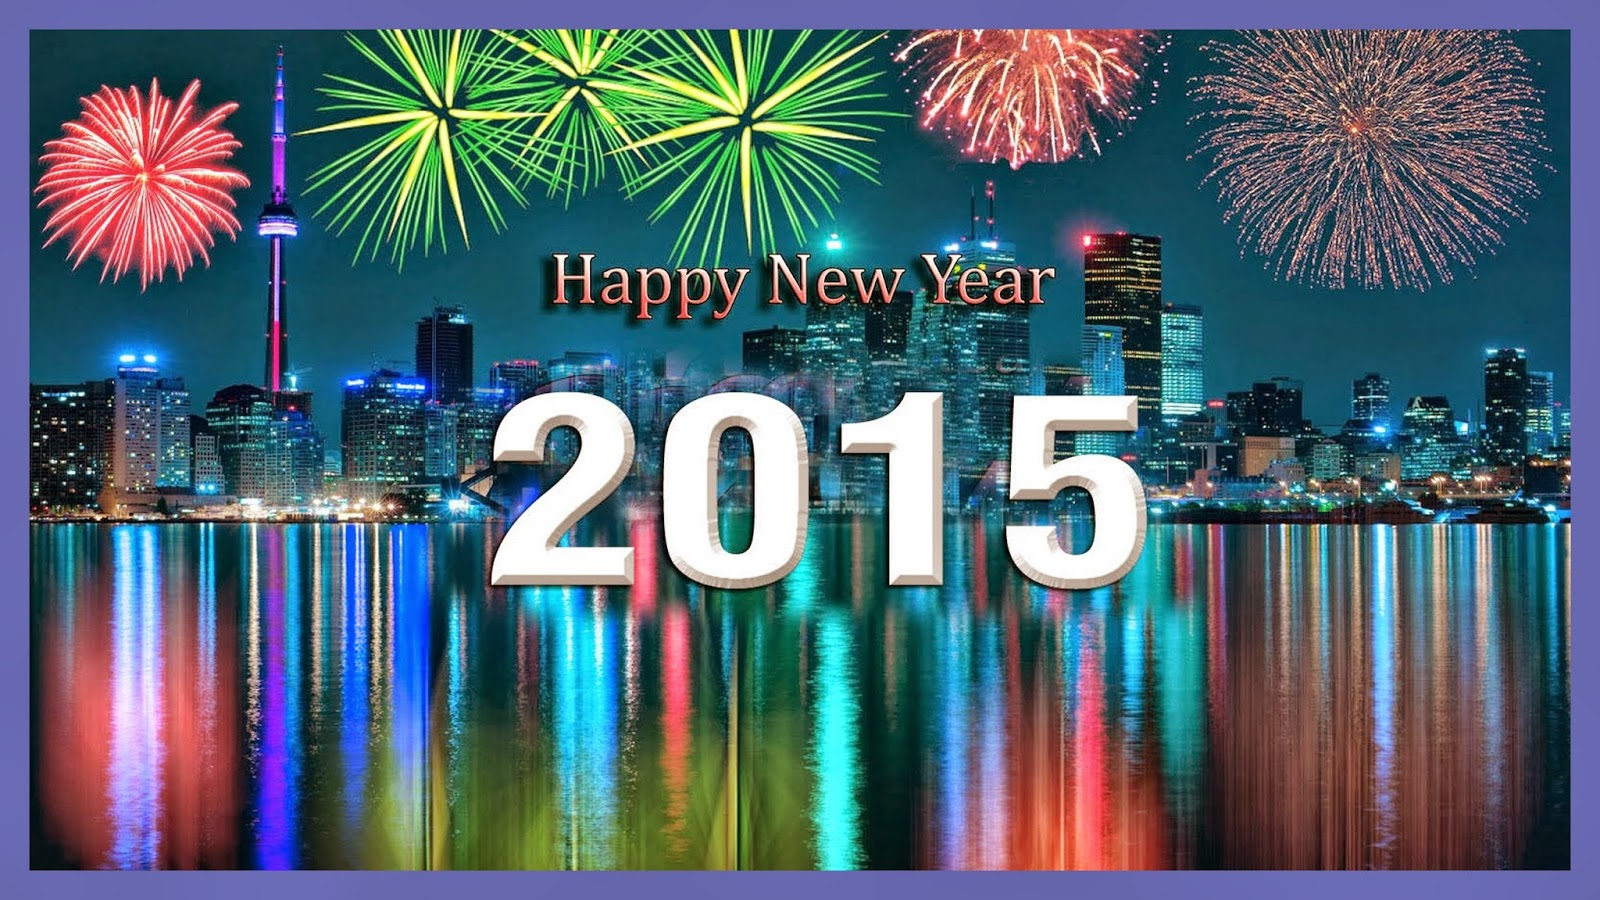 New year greeting videos free download choice image greetings new year greeting videos free download choice image greetings m4hsunfo